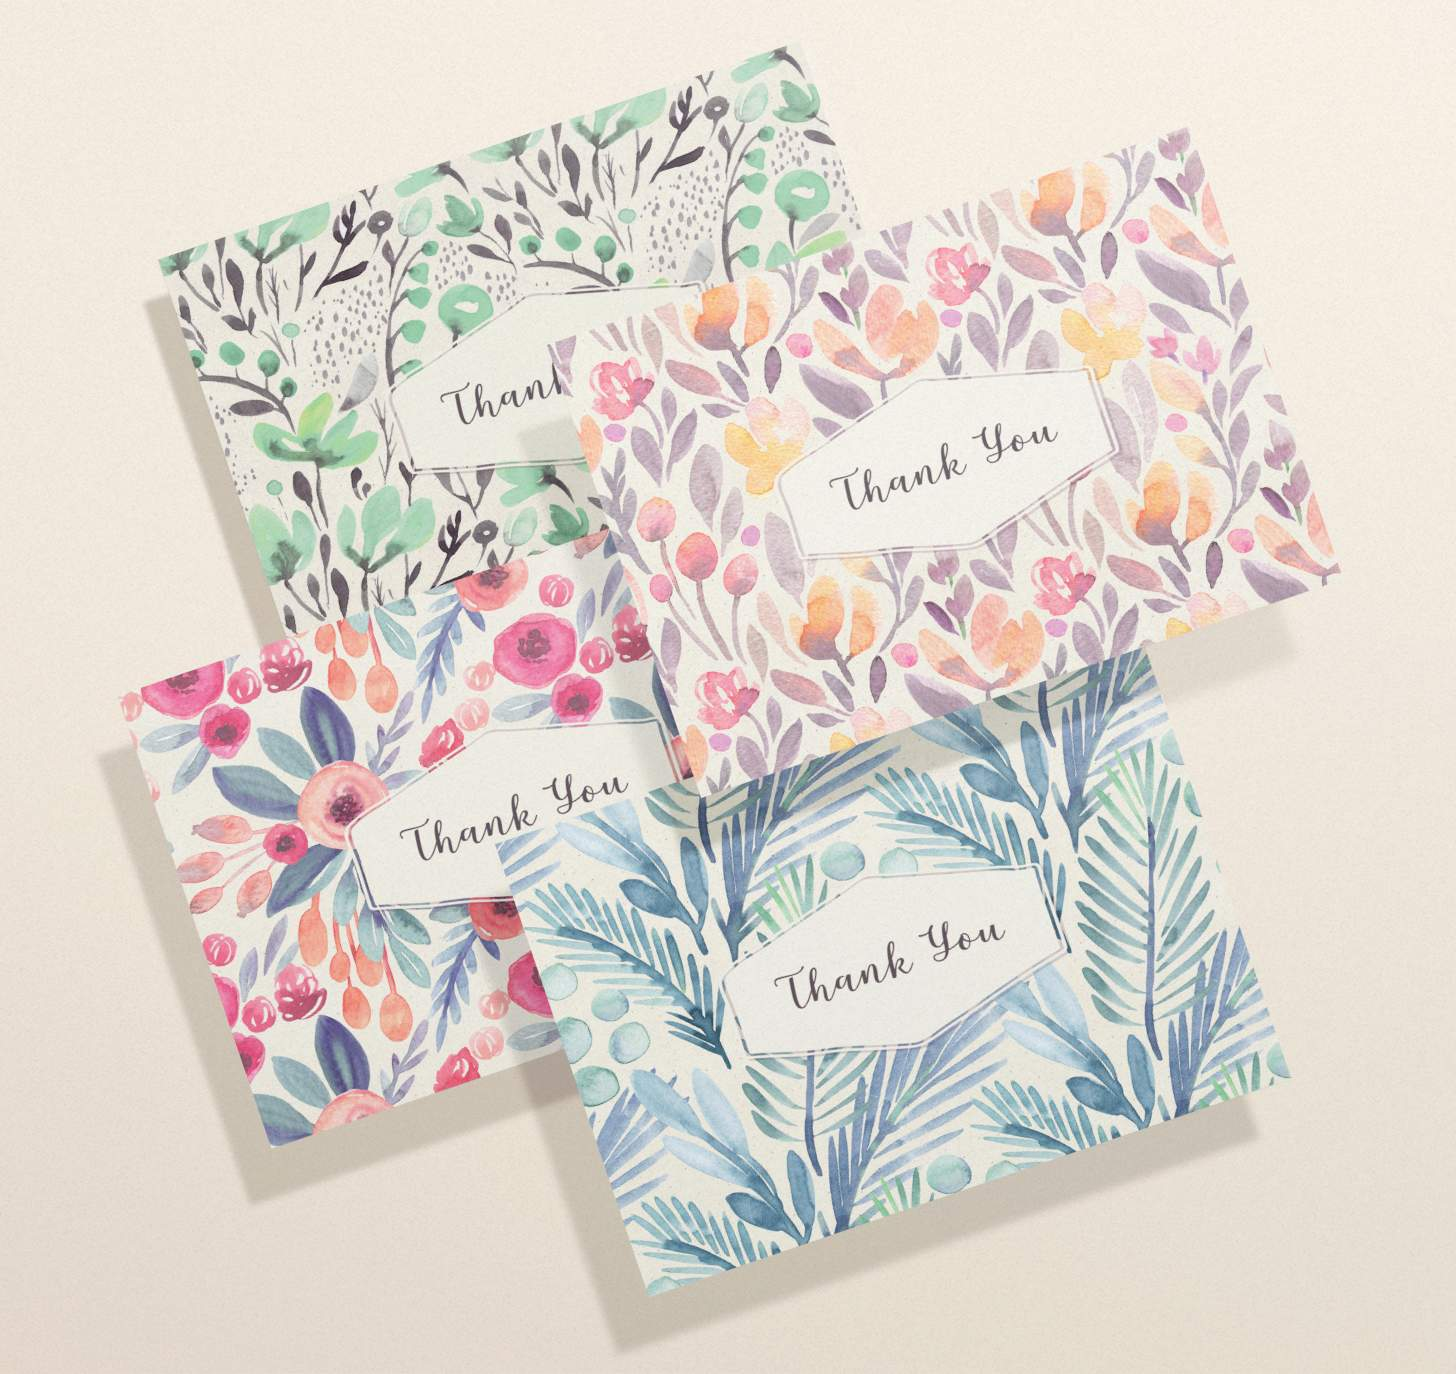 Thank you card with watercolor flowers. Front View.